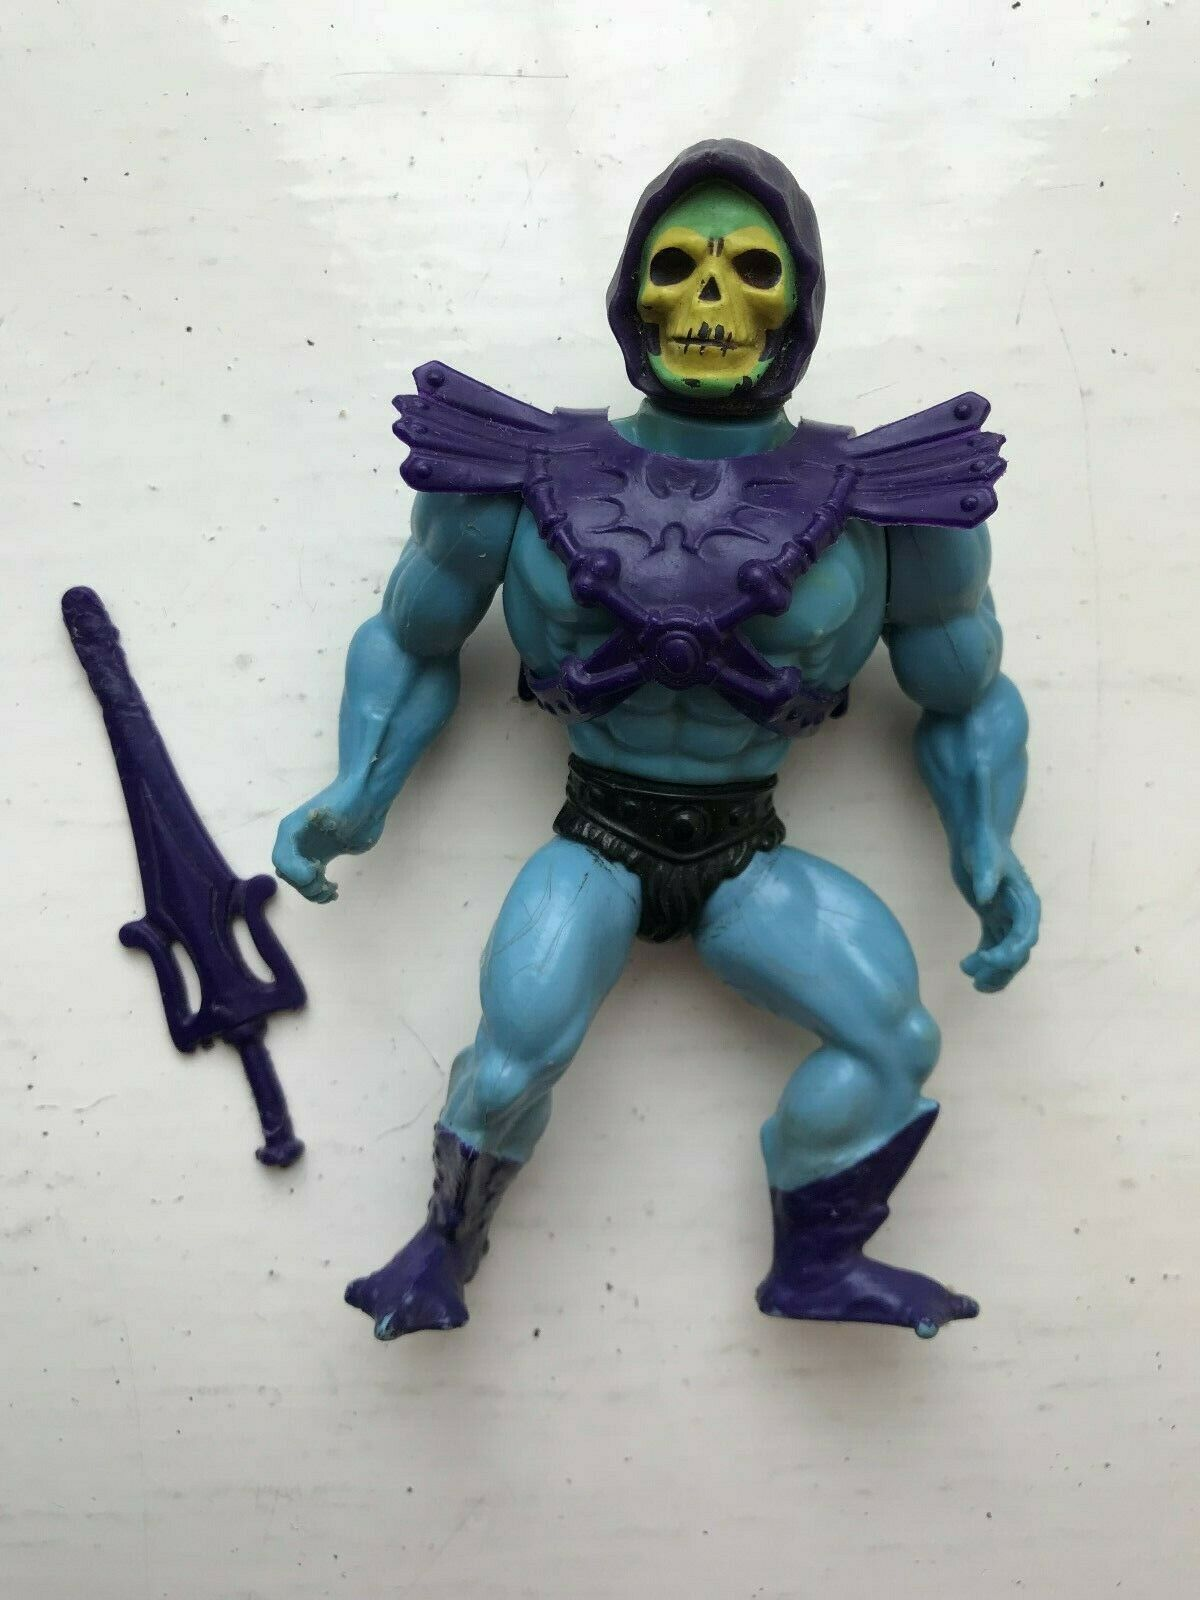 80S MATTEL HE-MAN MOTU MASTERS OF THE UNIVERSE SKELETOR FIGURE + ACCESSORIES